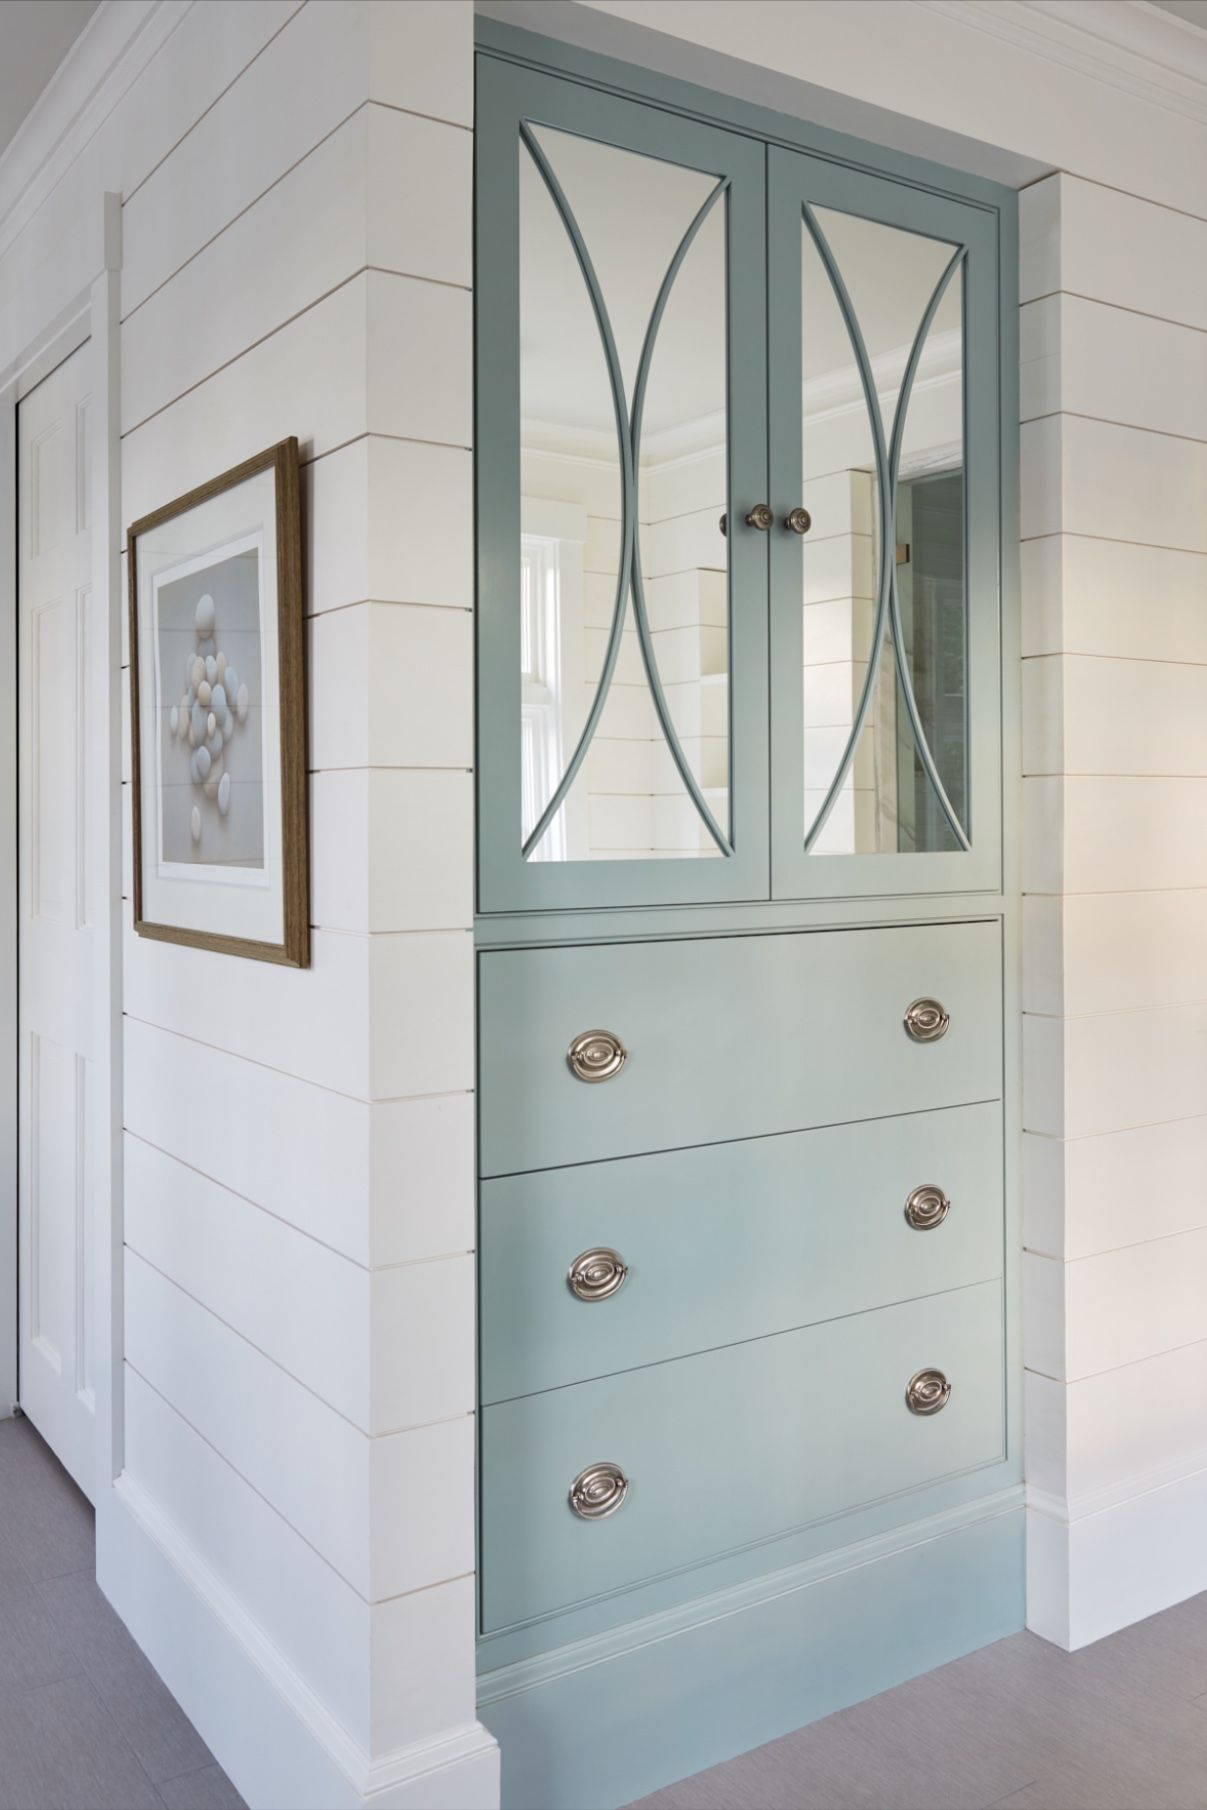 Furniture Detailing On This Blue Linen Cabinet Lends Elegance To